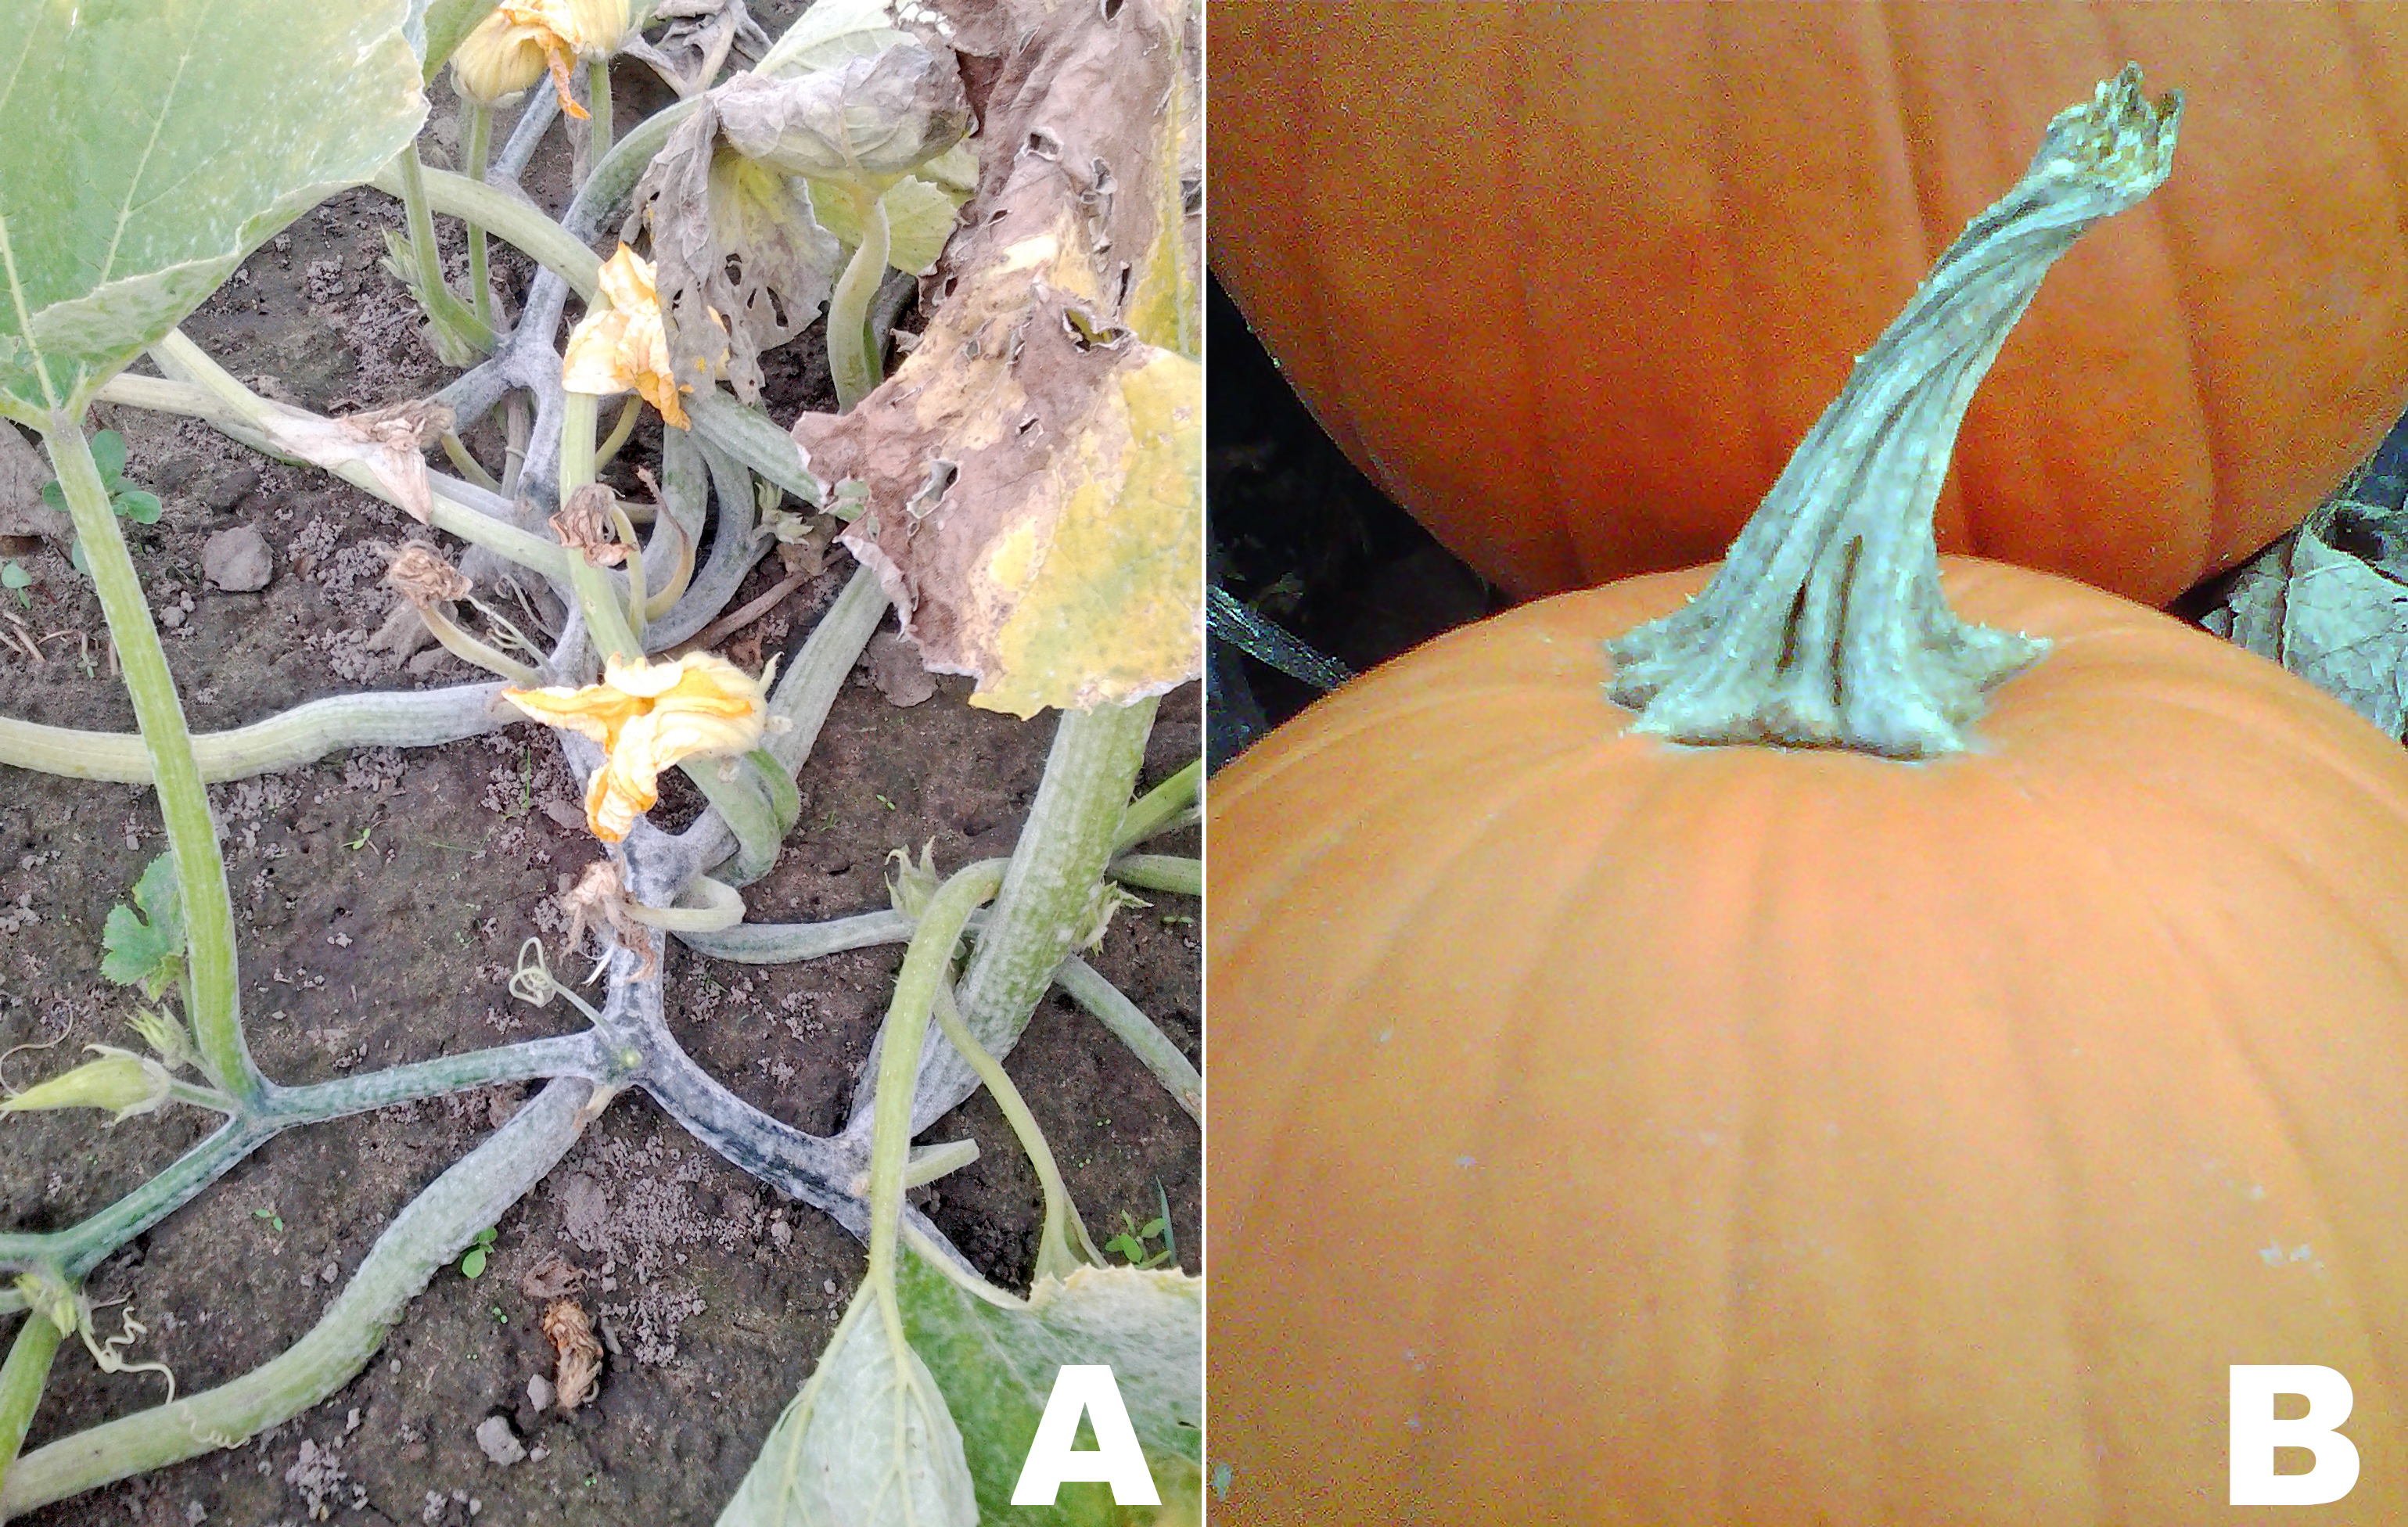 two photos of powdery mildew infestation